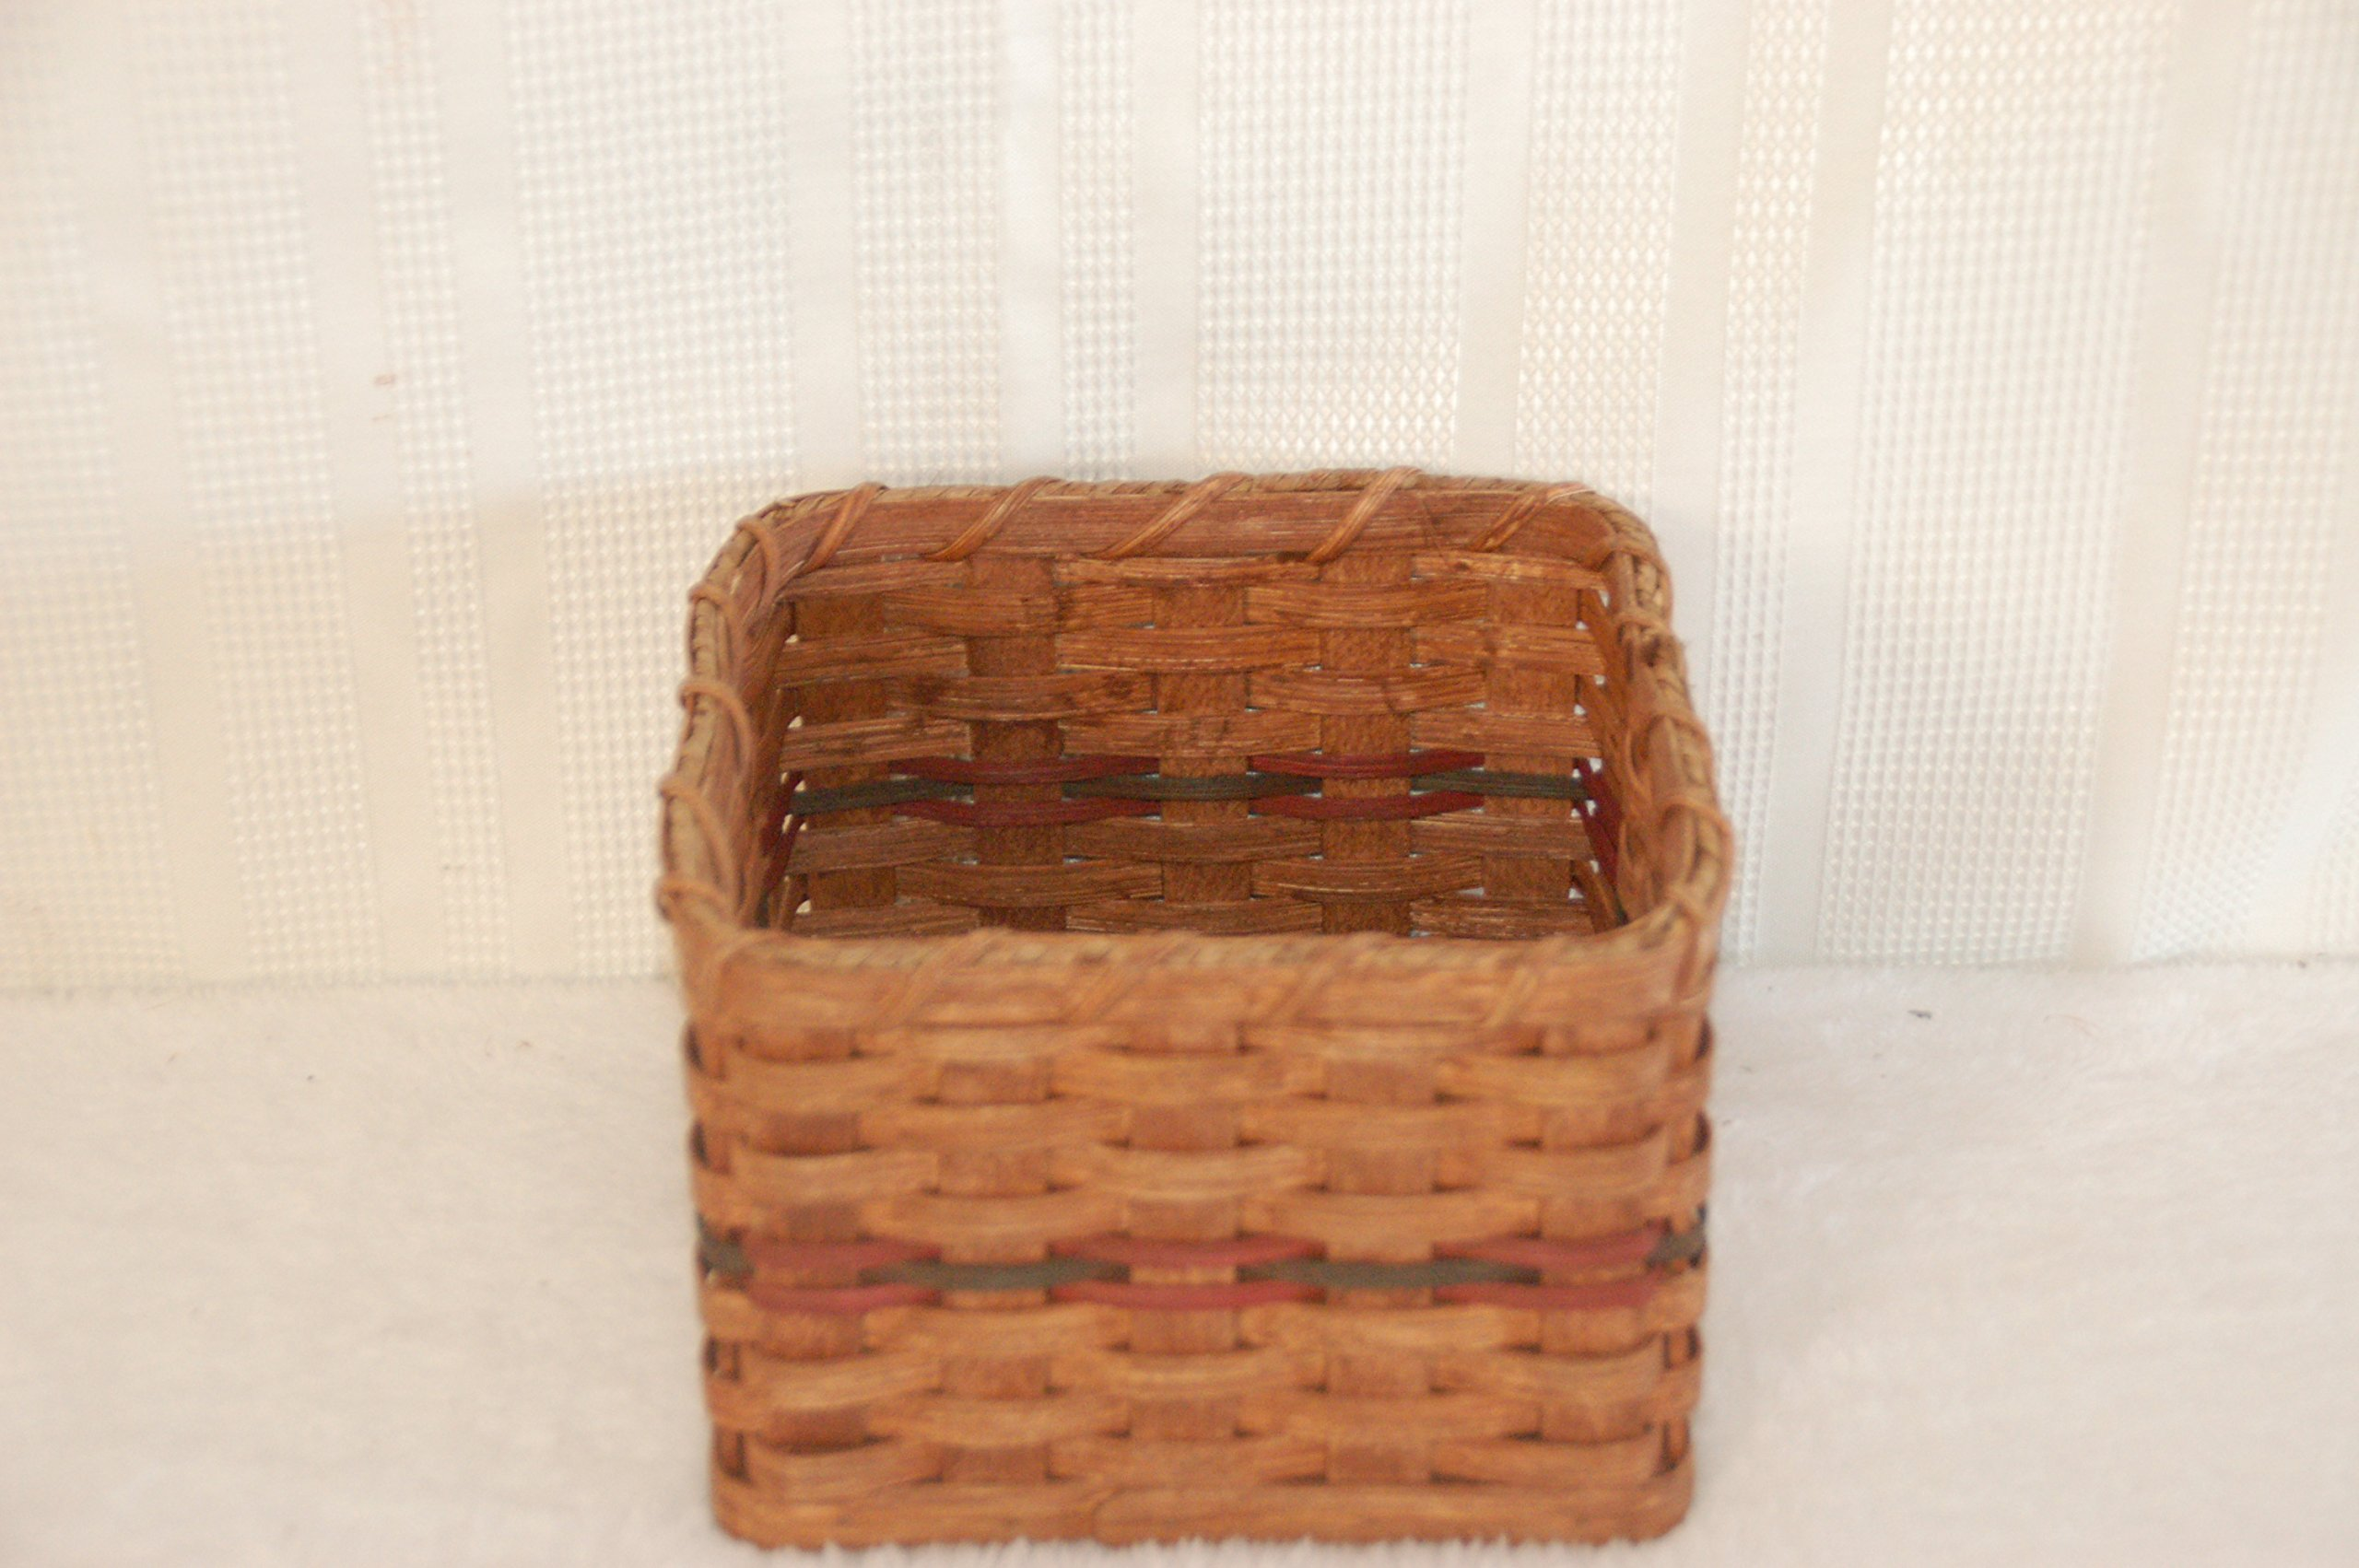 Amish Rustic Country Home Decor Napkin Basket. Amish Handmade Basket Designed to Hold Napkins. Perfect for Family Cookouts, Potlucks, and Church Socials. Makes a Beautiful Setting on the Table Especially When Combined with the Paper Plate Basket. Measures